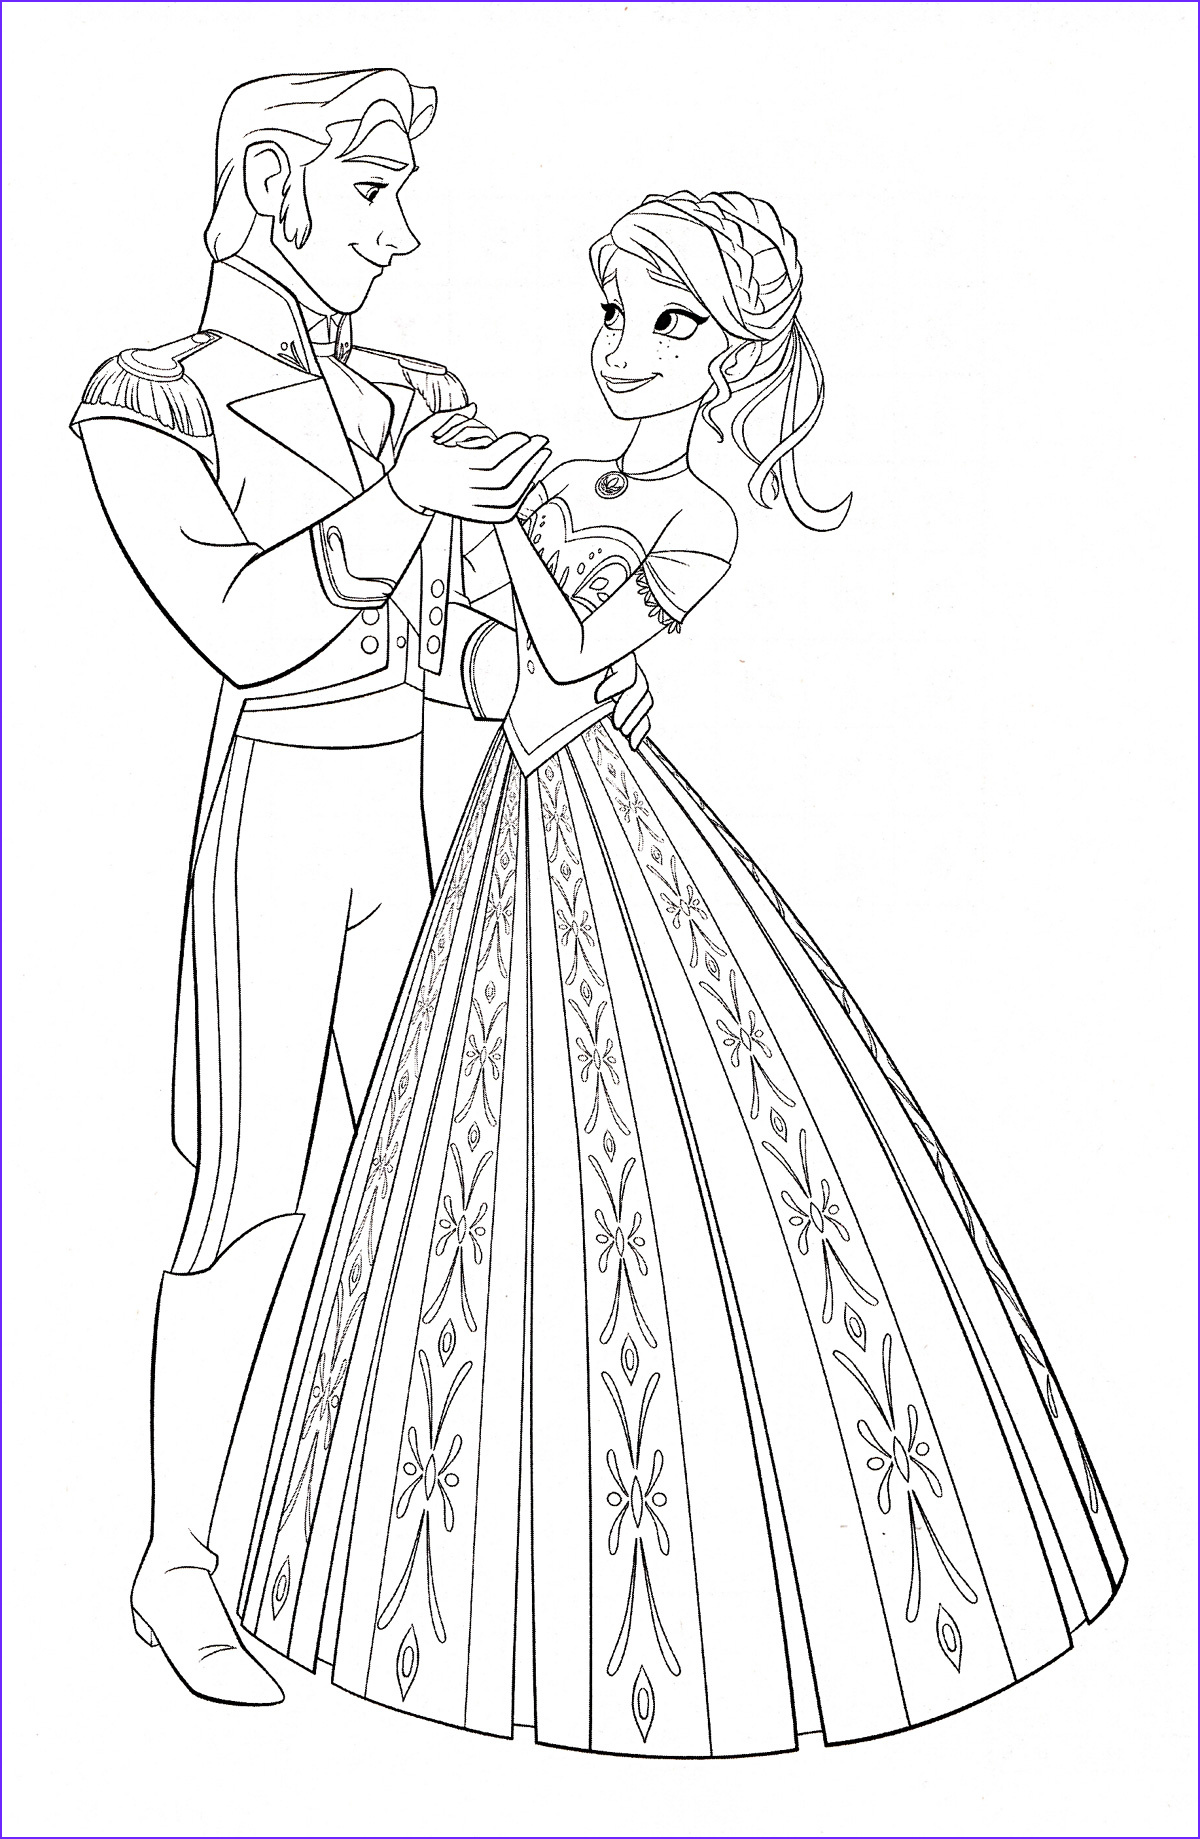 Coloring Pages Frozen Cool Images Disney Frozen Coloring Pages to Download